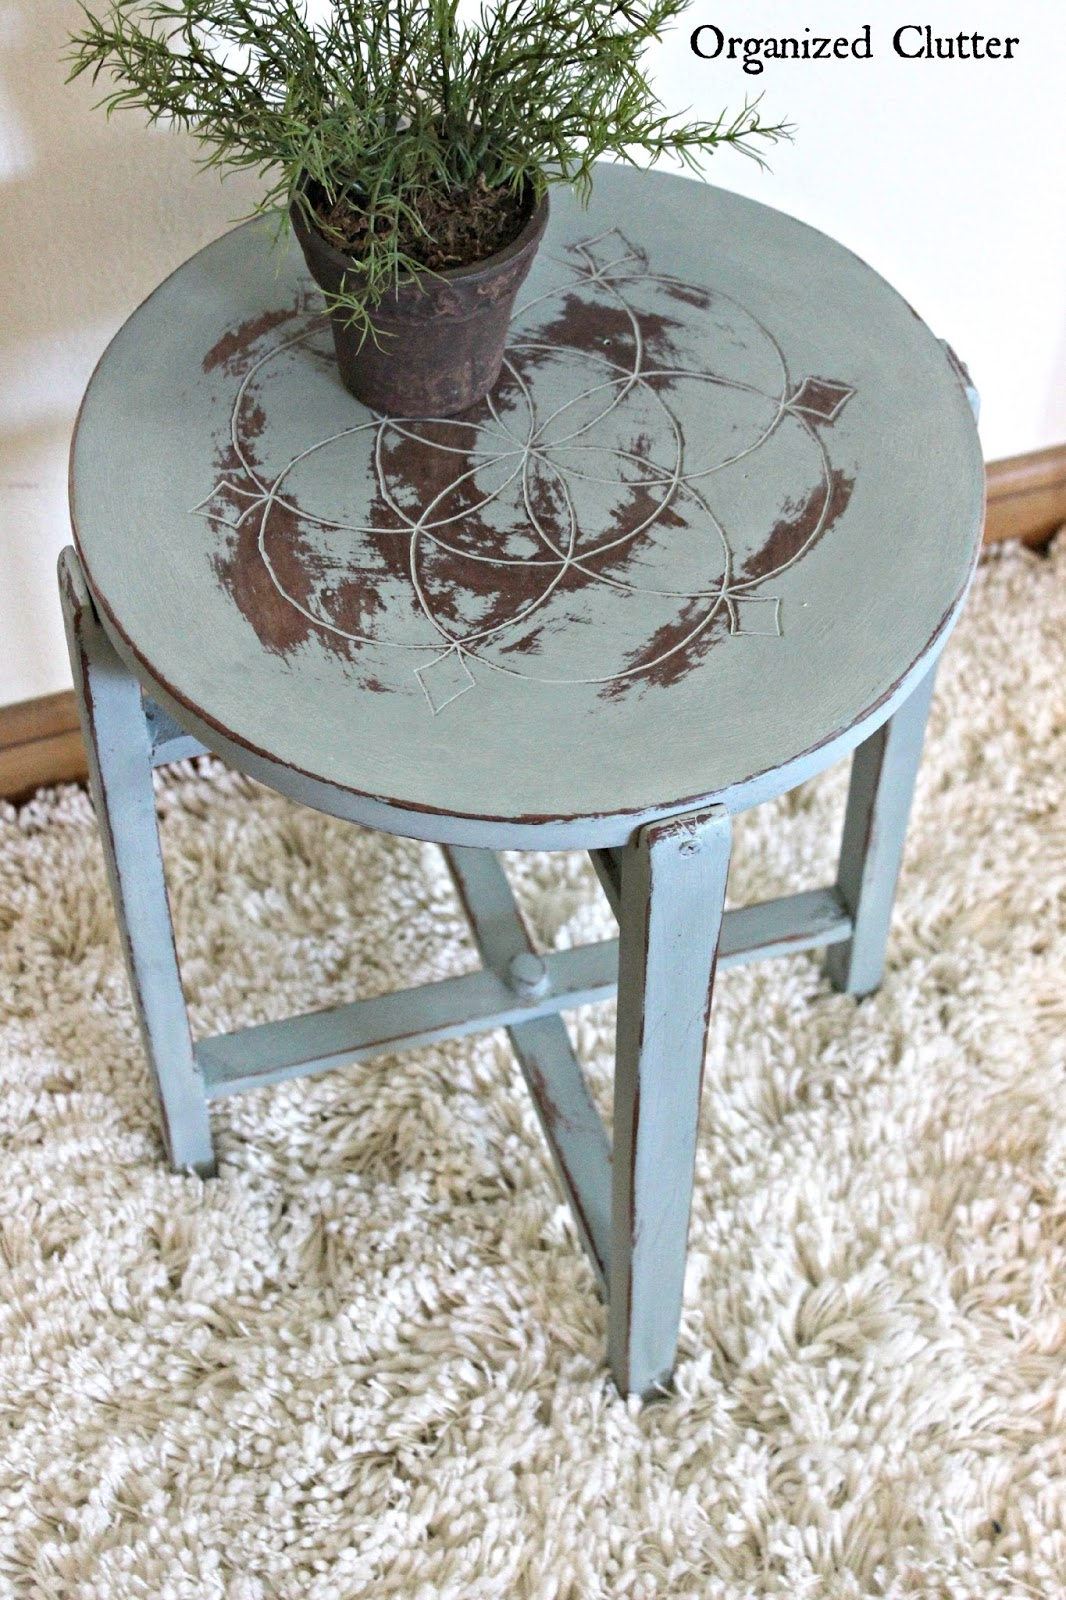 Duck Egg Blue Chalk Paint & Wet Distressing www.organizedclutter.net